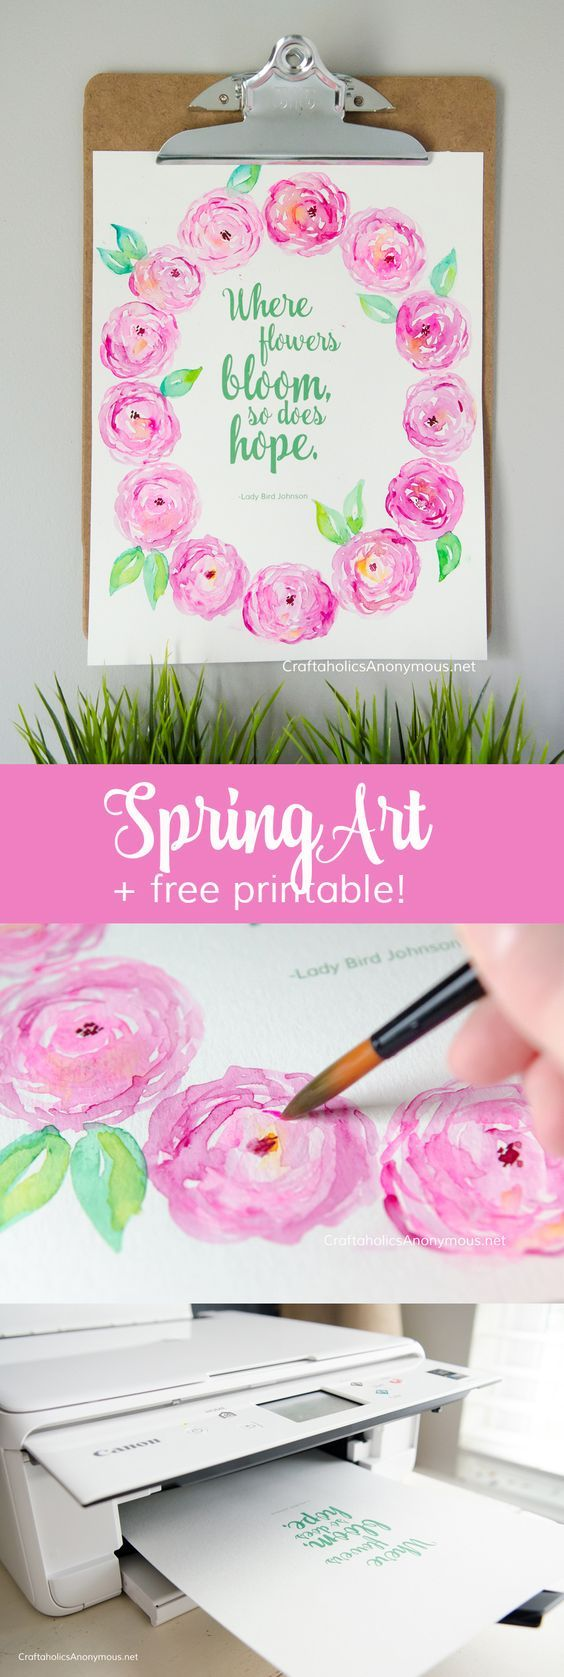 Spring Crafts heal the soul. This could be used for making cards or a tattoo design?? Love this spring decor idea.